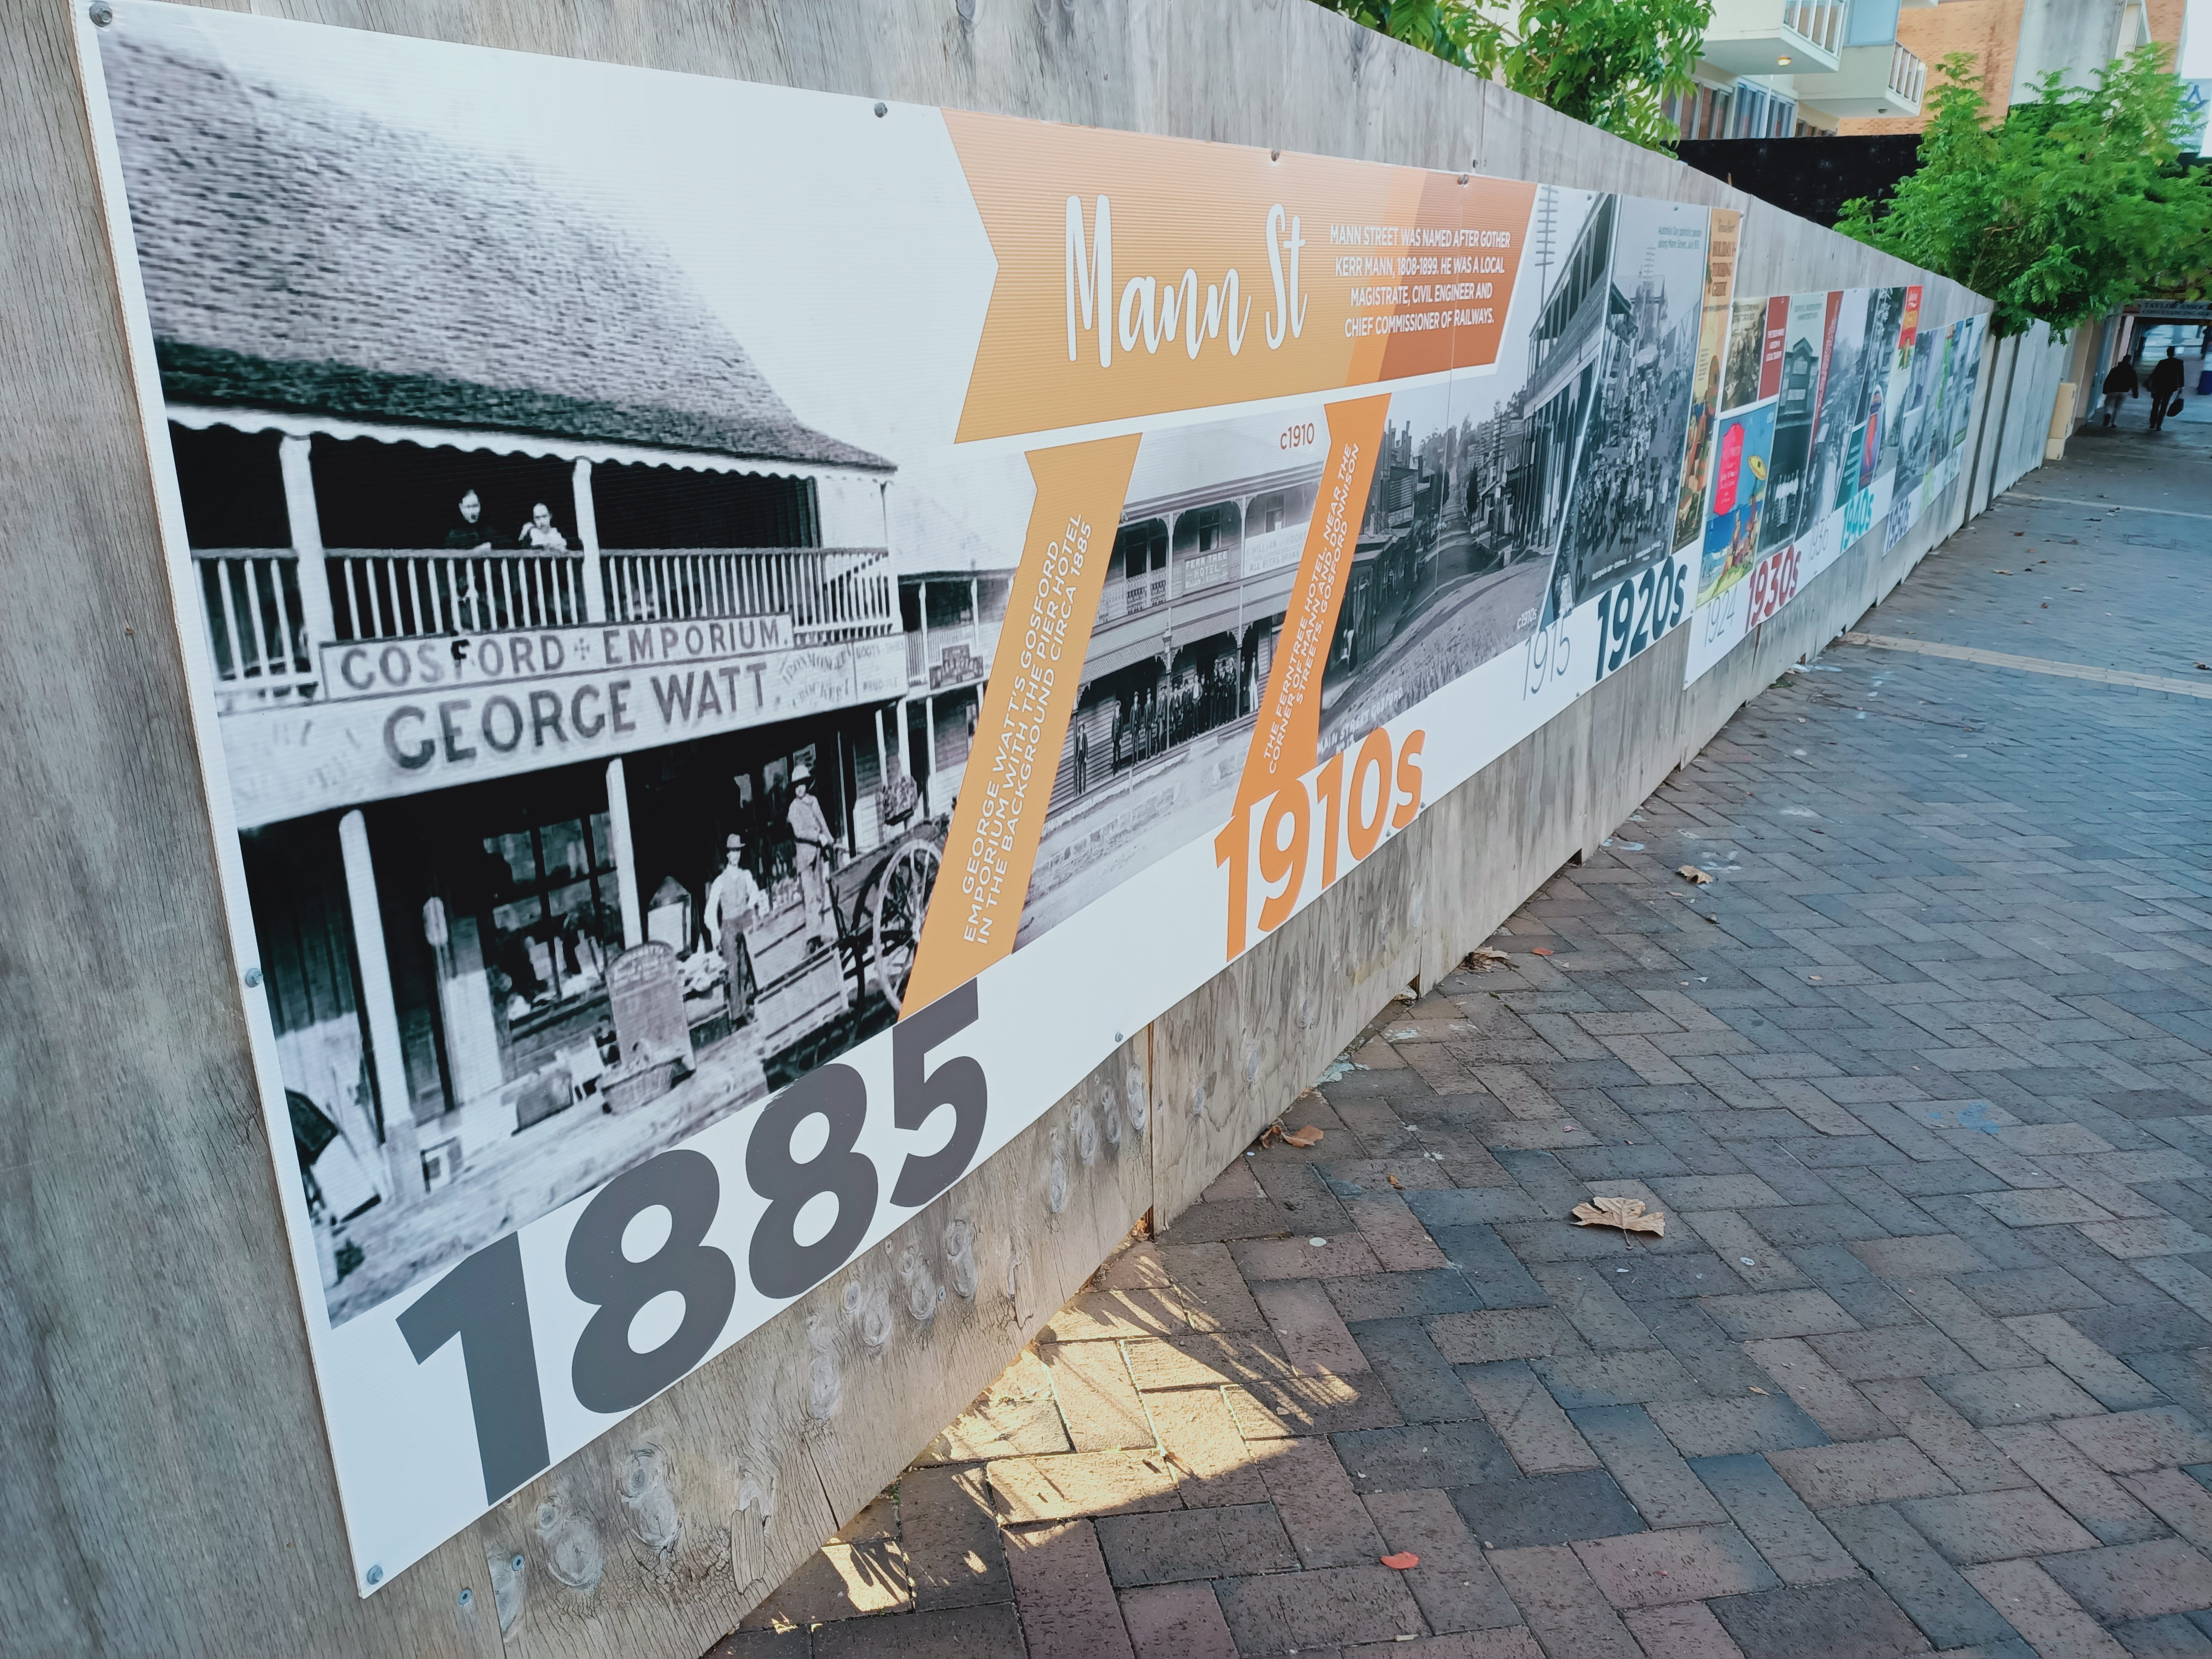 135 years of the Mann Street story.